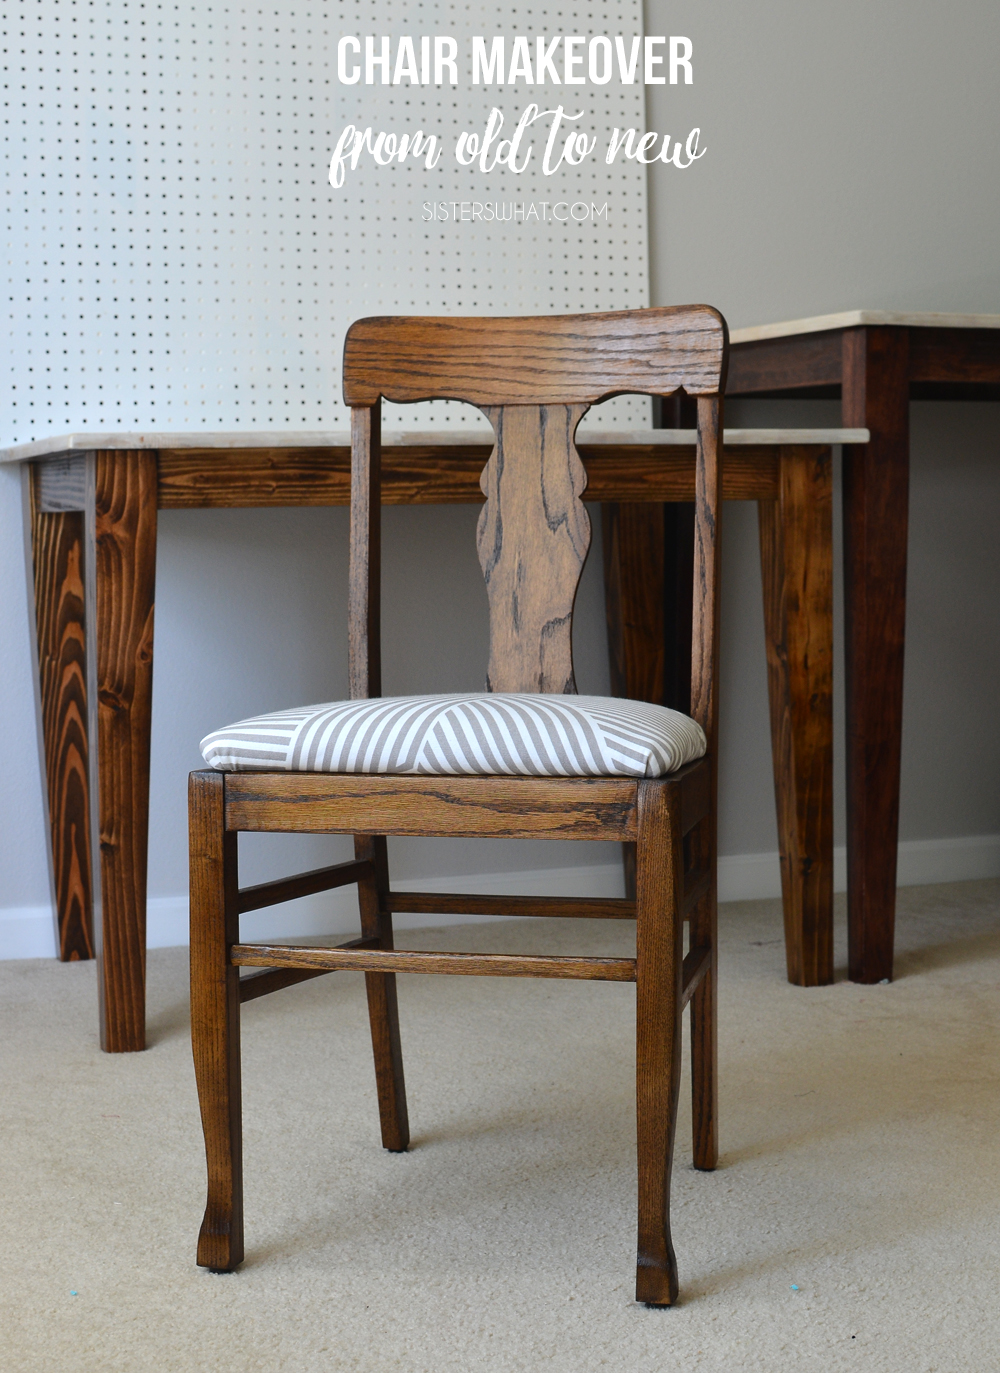 Diy Chair Makeover From Old To New